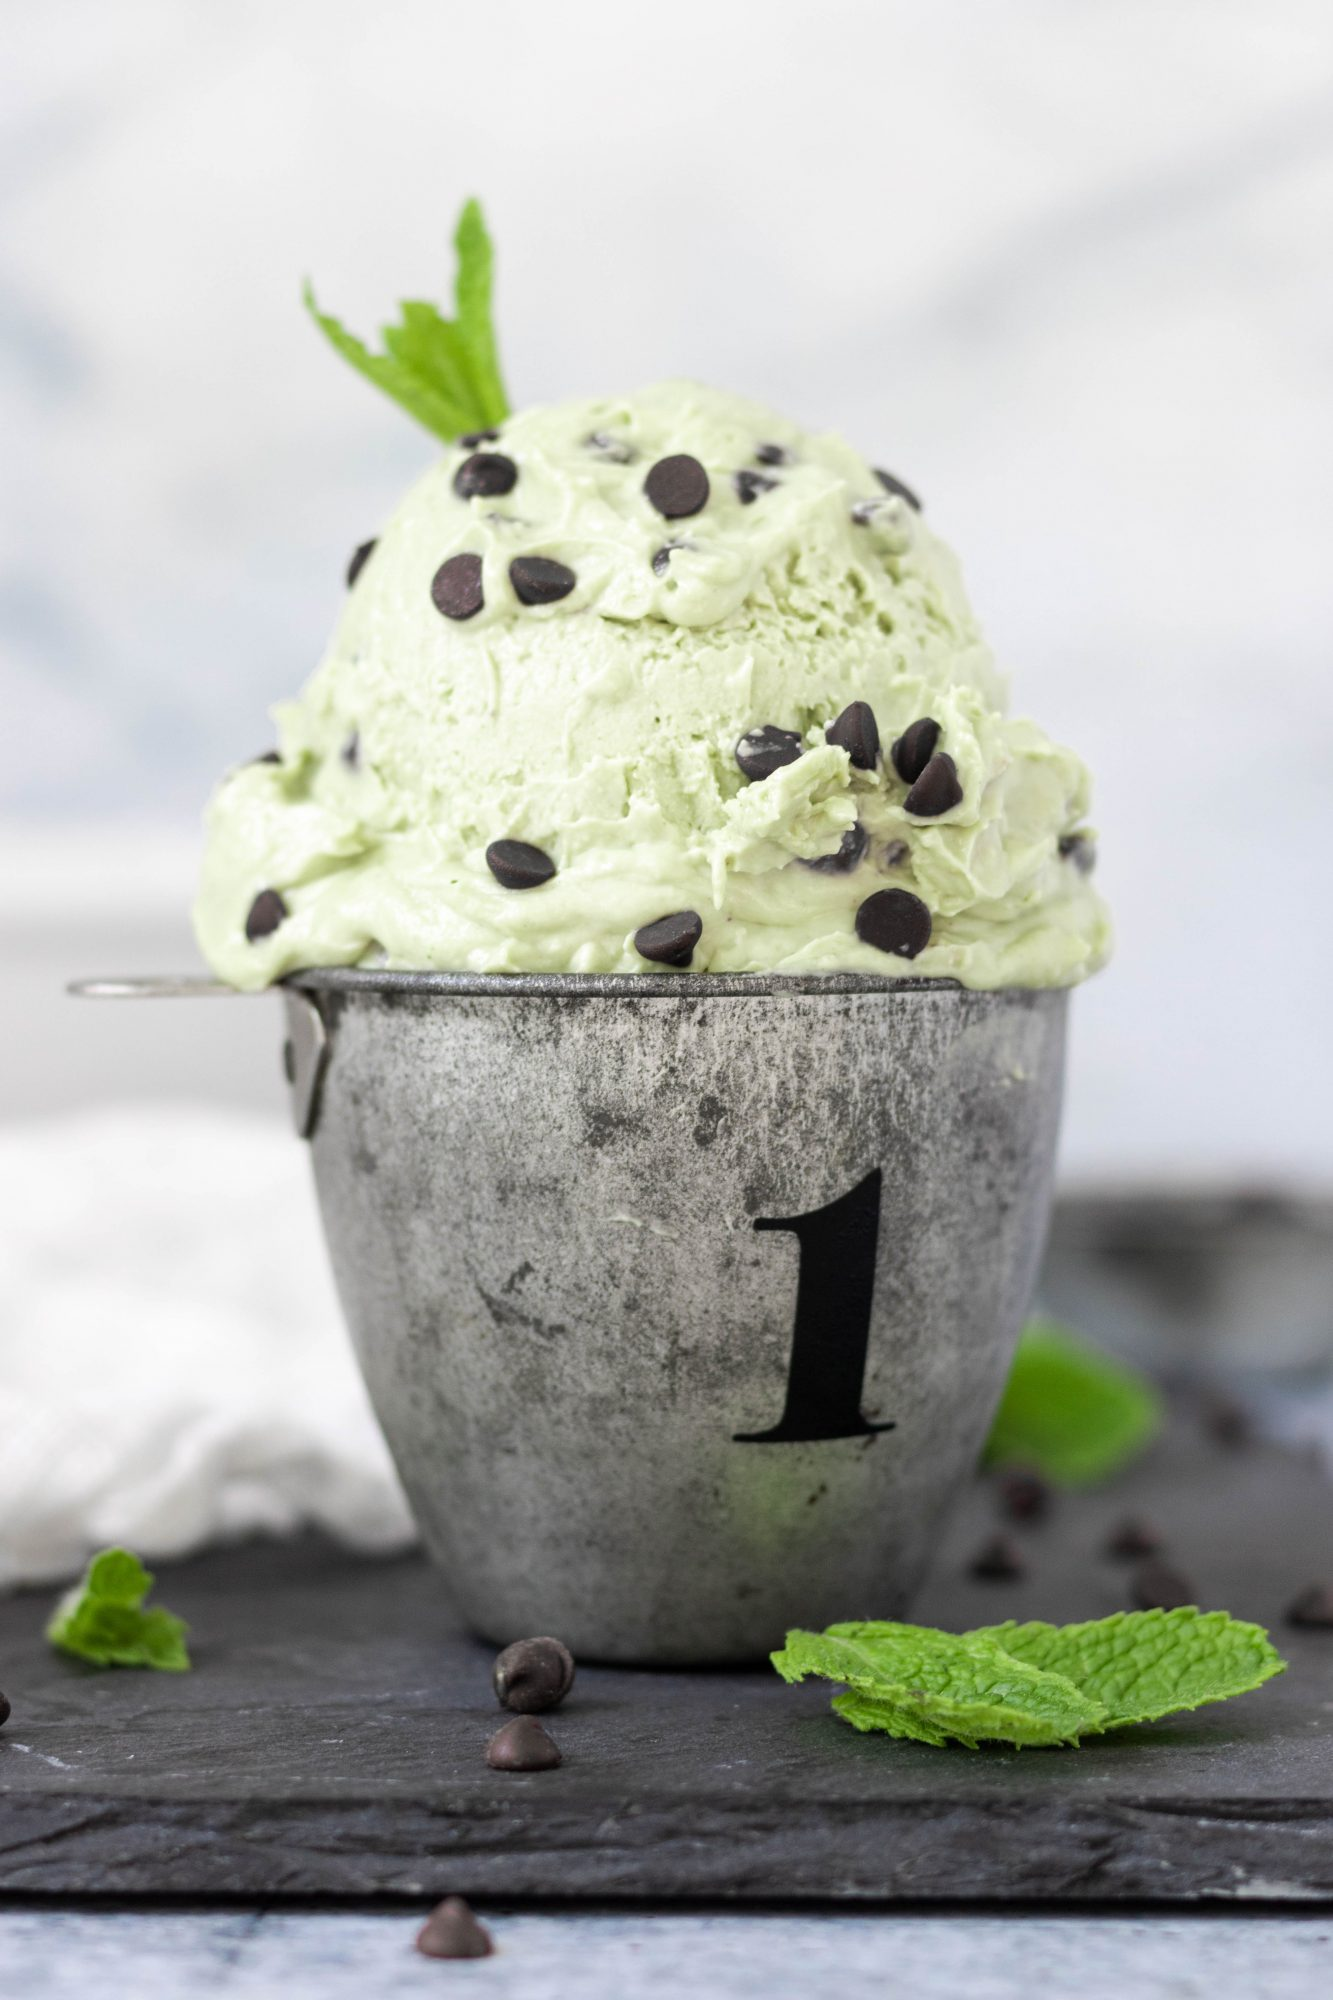 Vegan No-Churn Mint Chocolate Chip Ice Cream